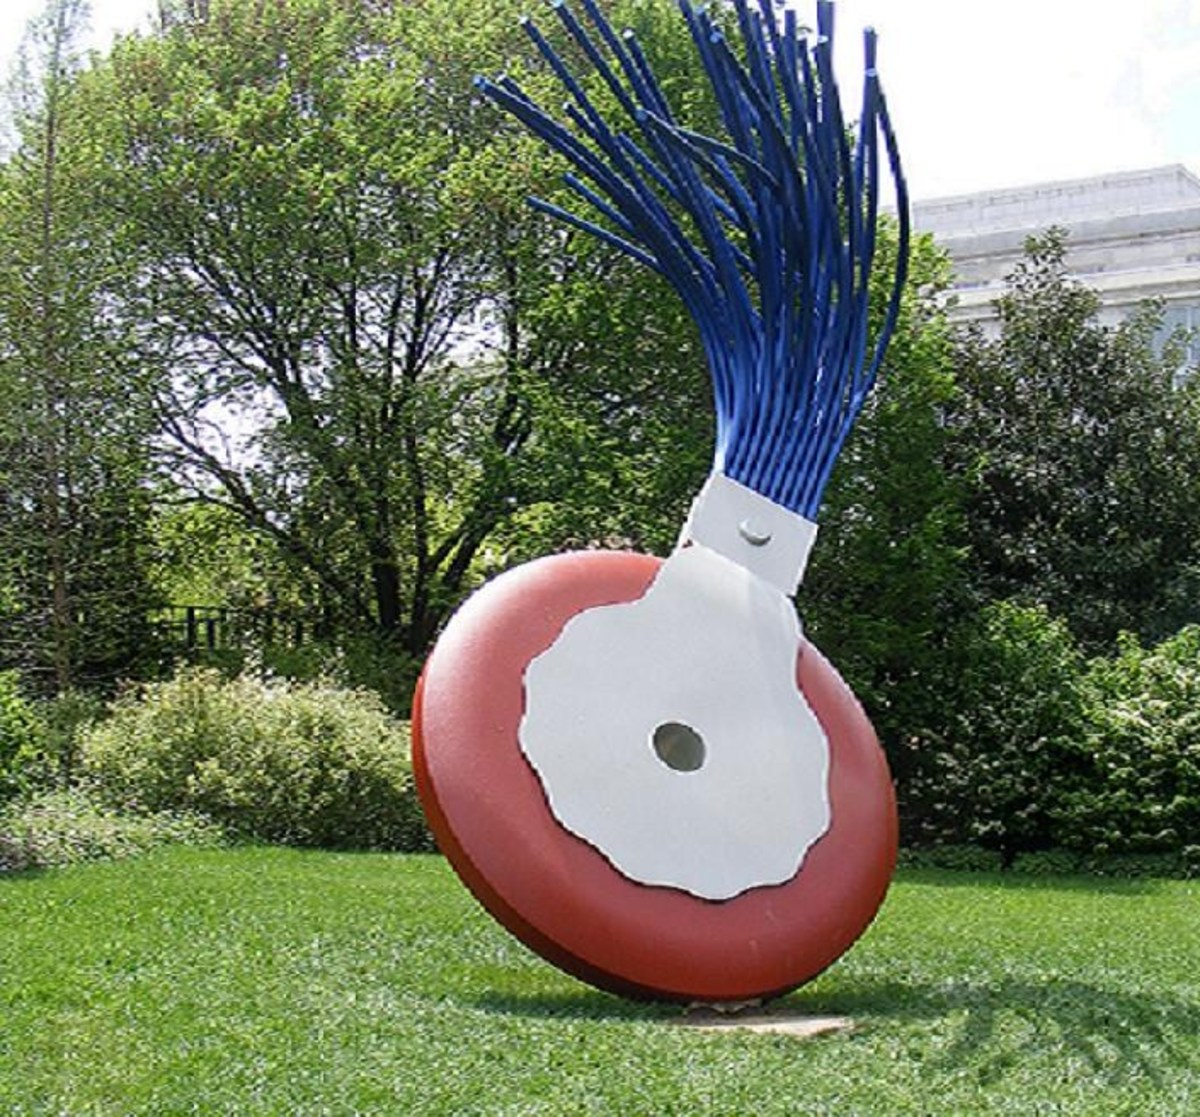 Giant typewriter eraser sculpture- Claes Oldenburg-1976